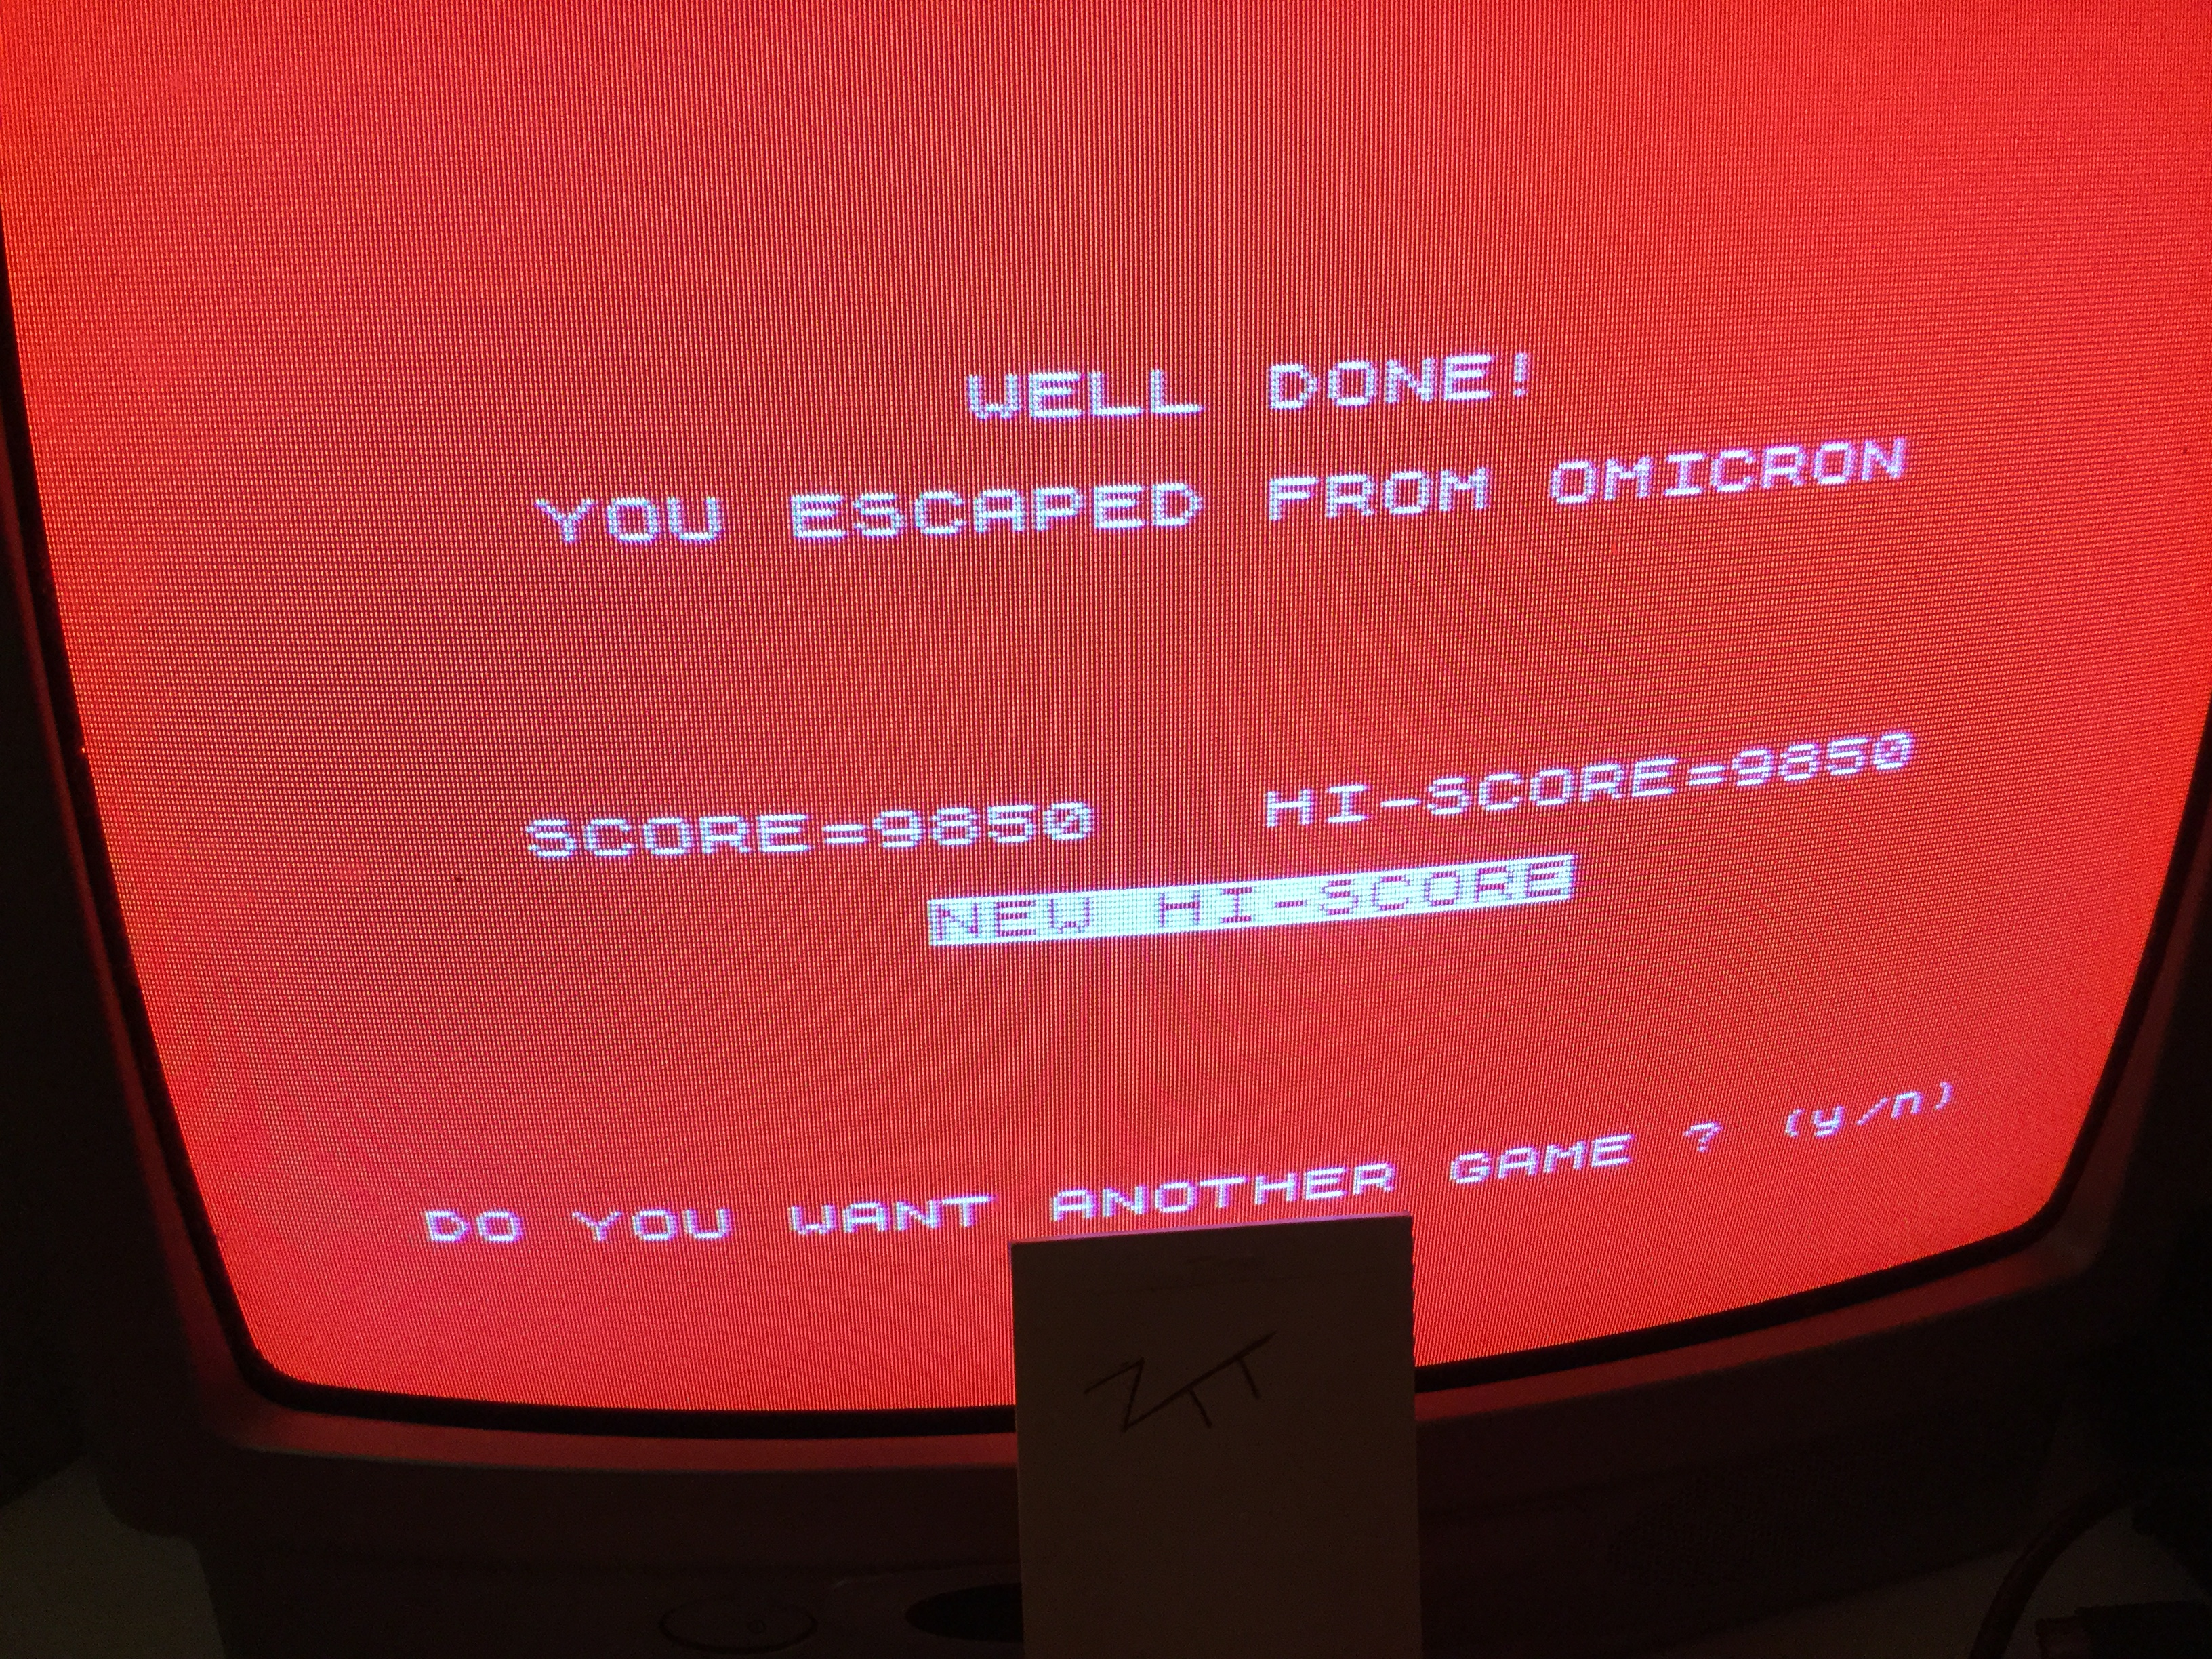 Escape from Omicron [Level 1] 9,850 points